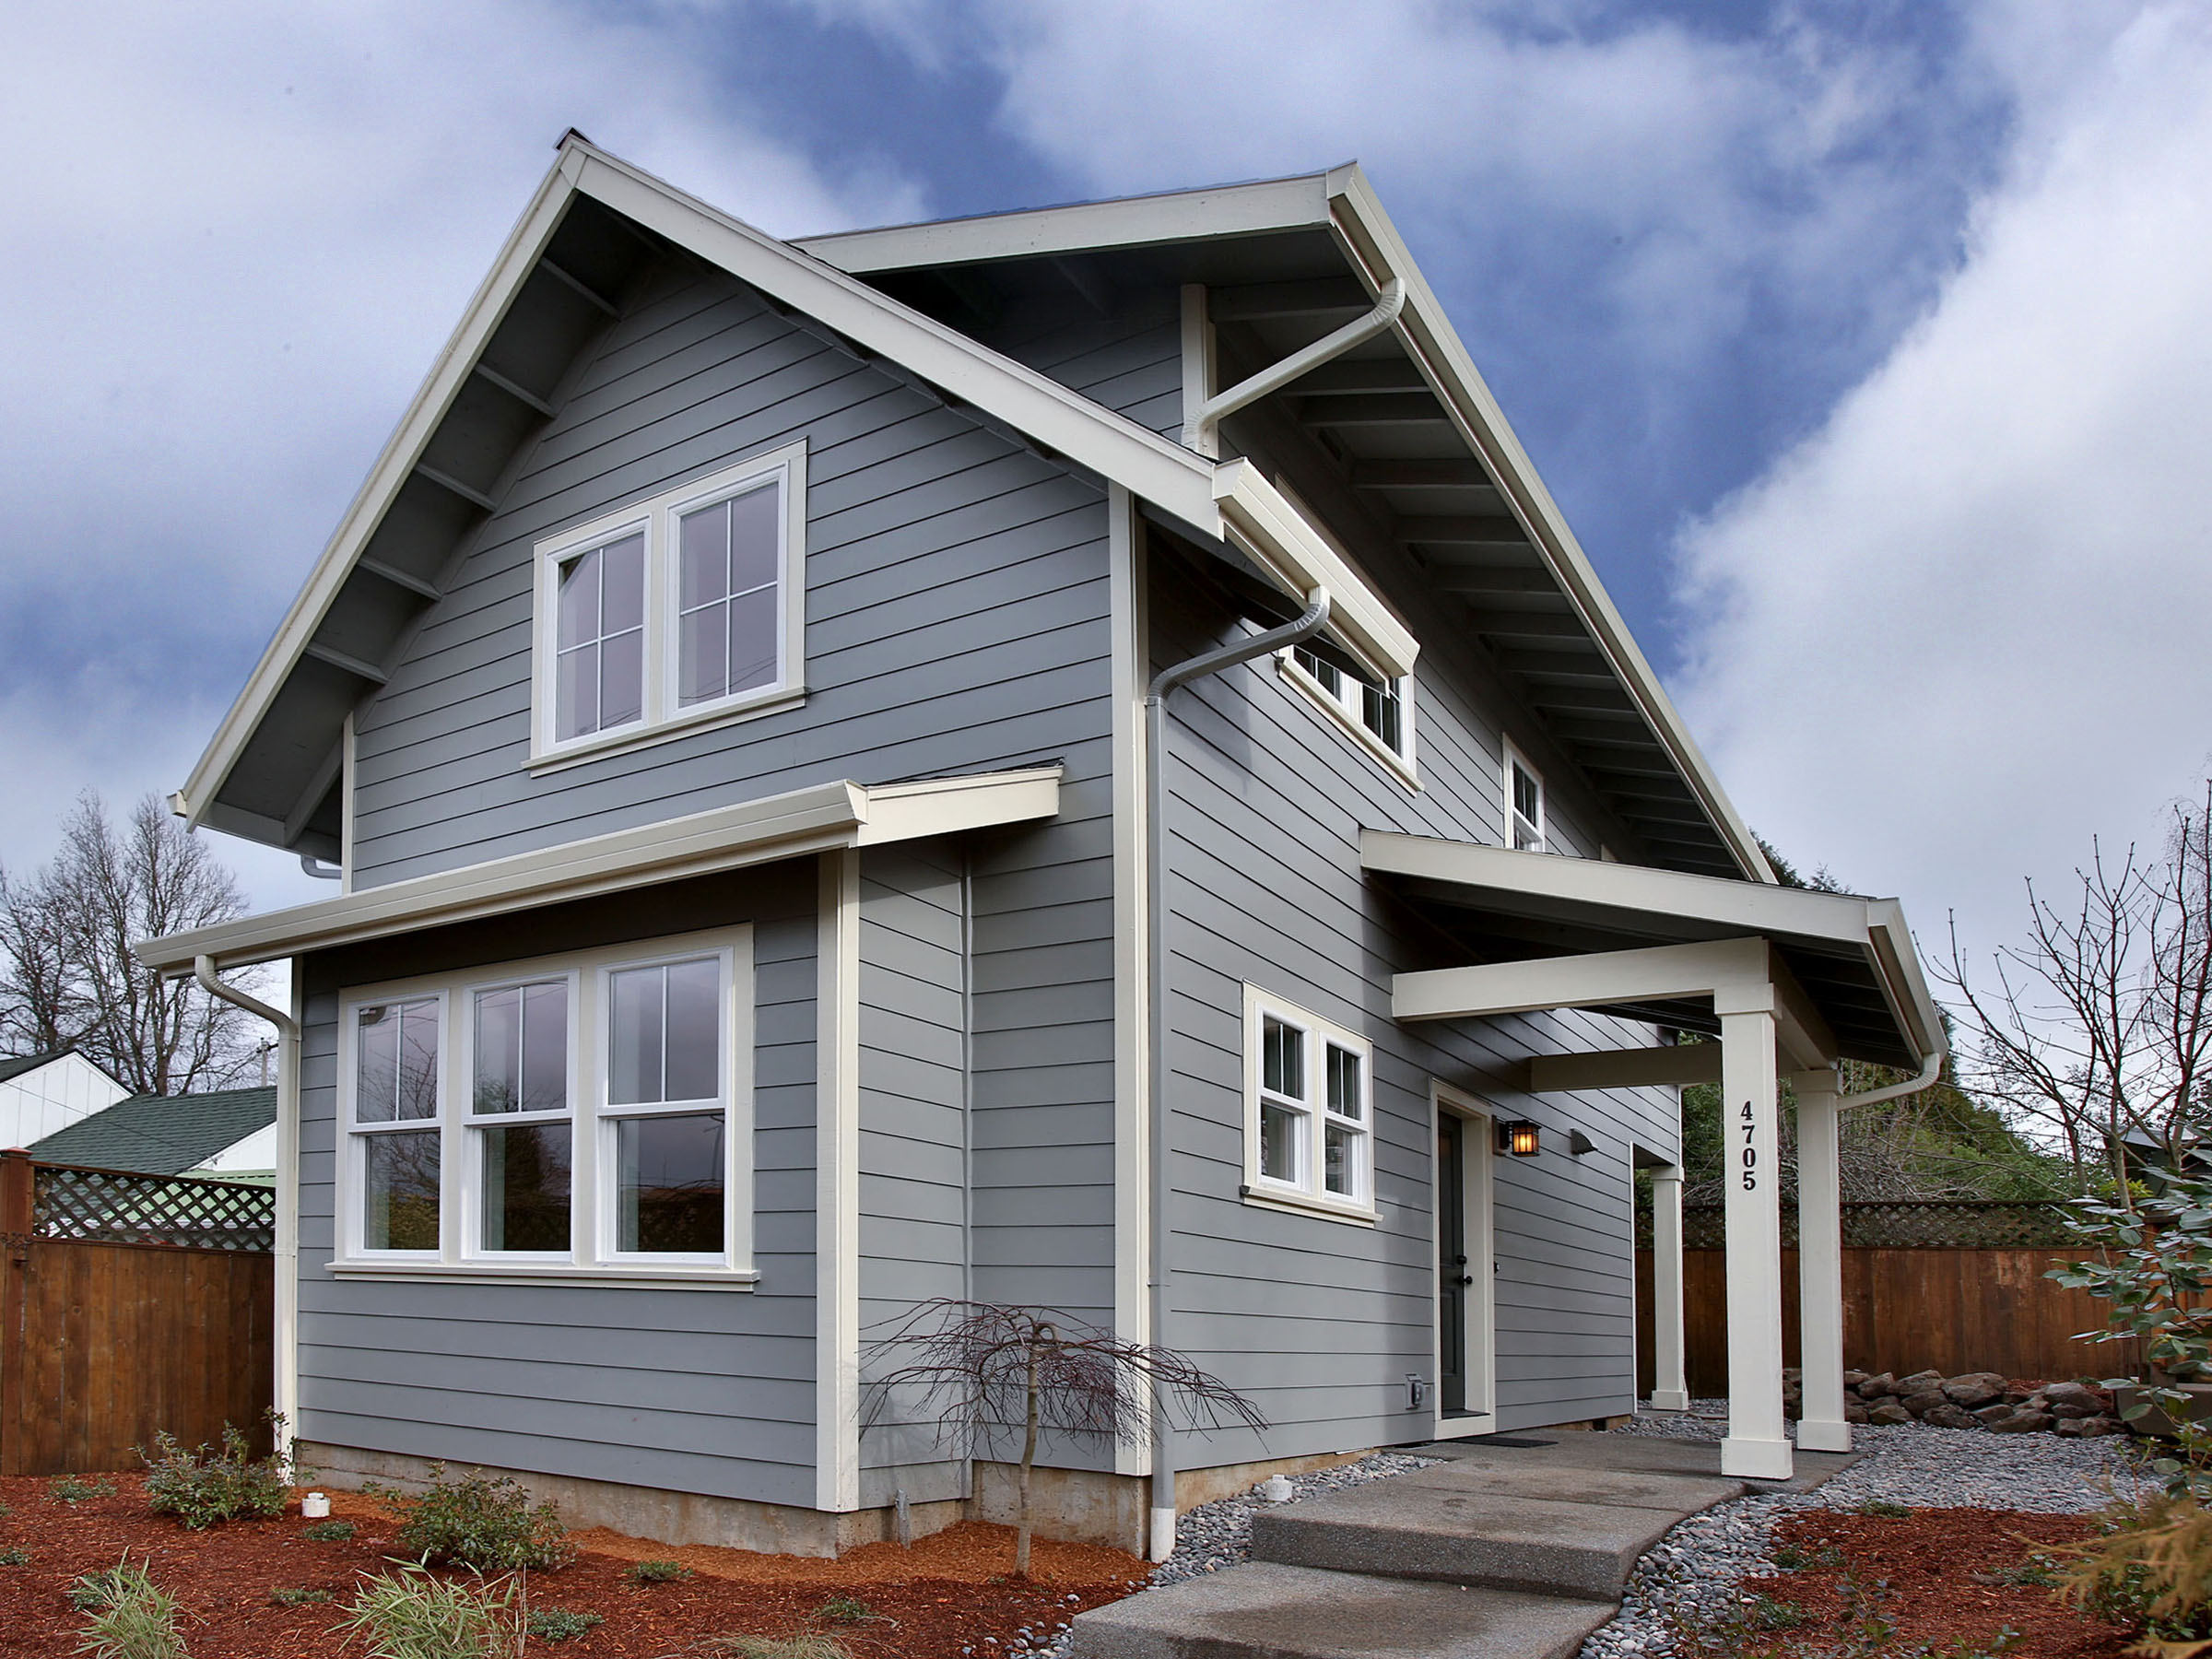 Specialized ADU micro home Portland construction